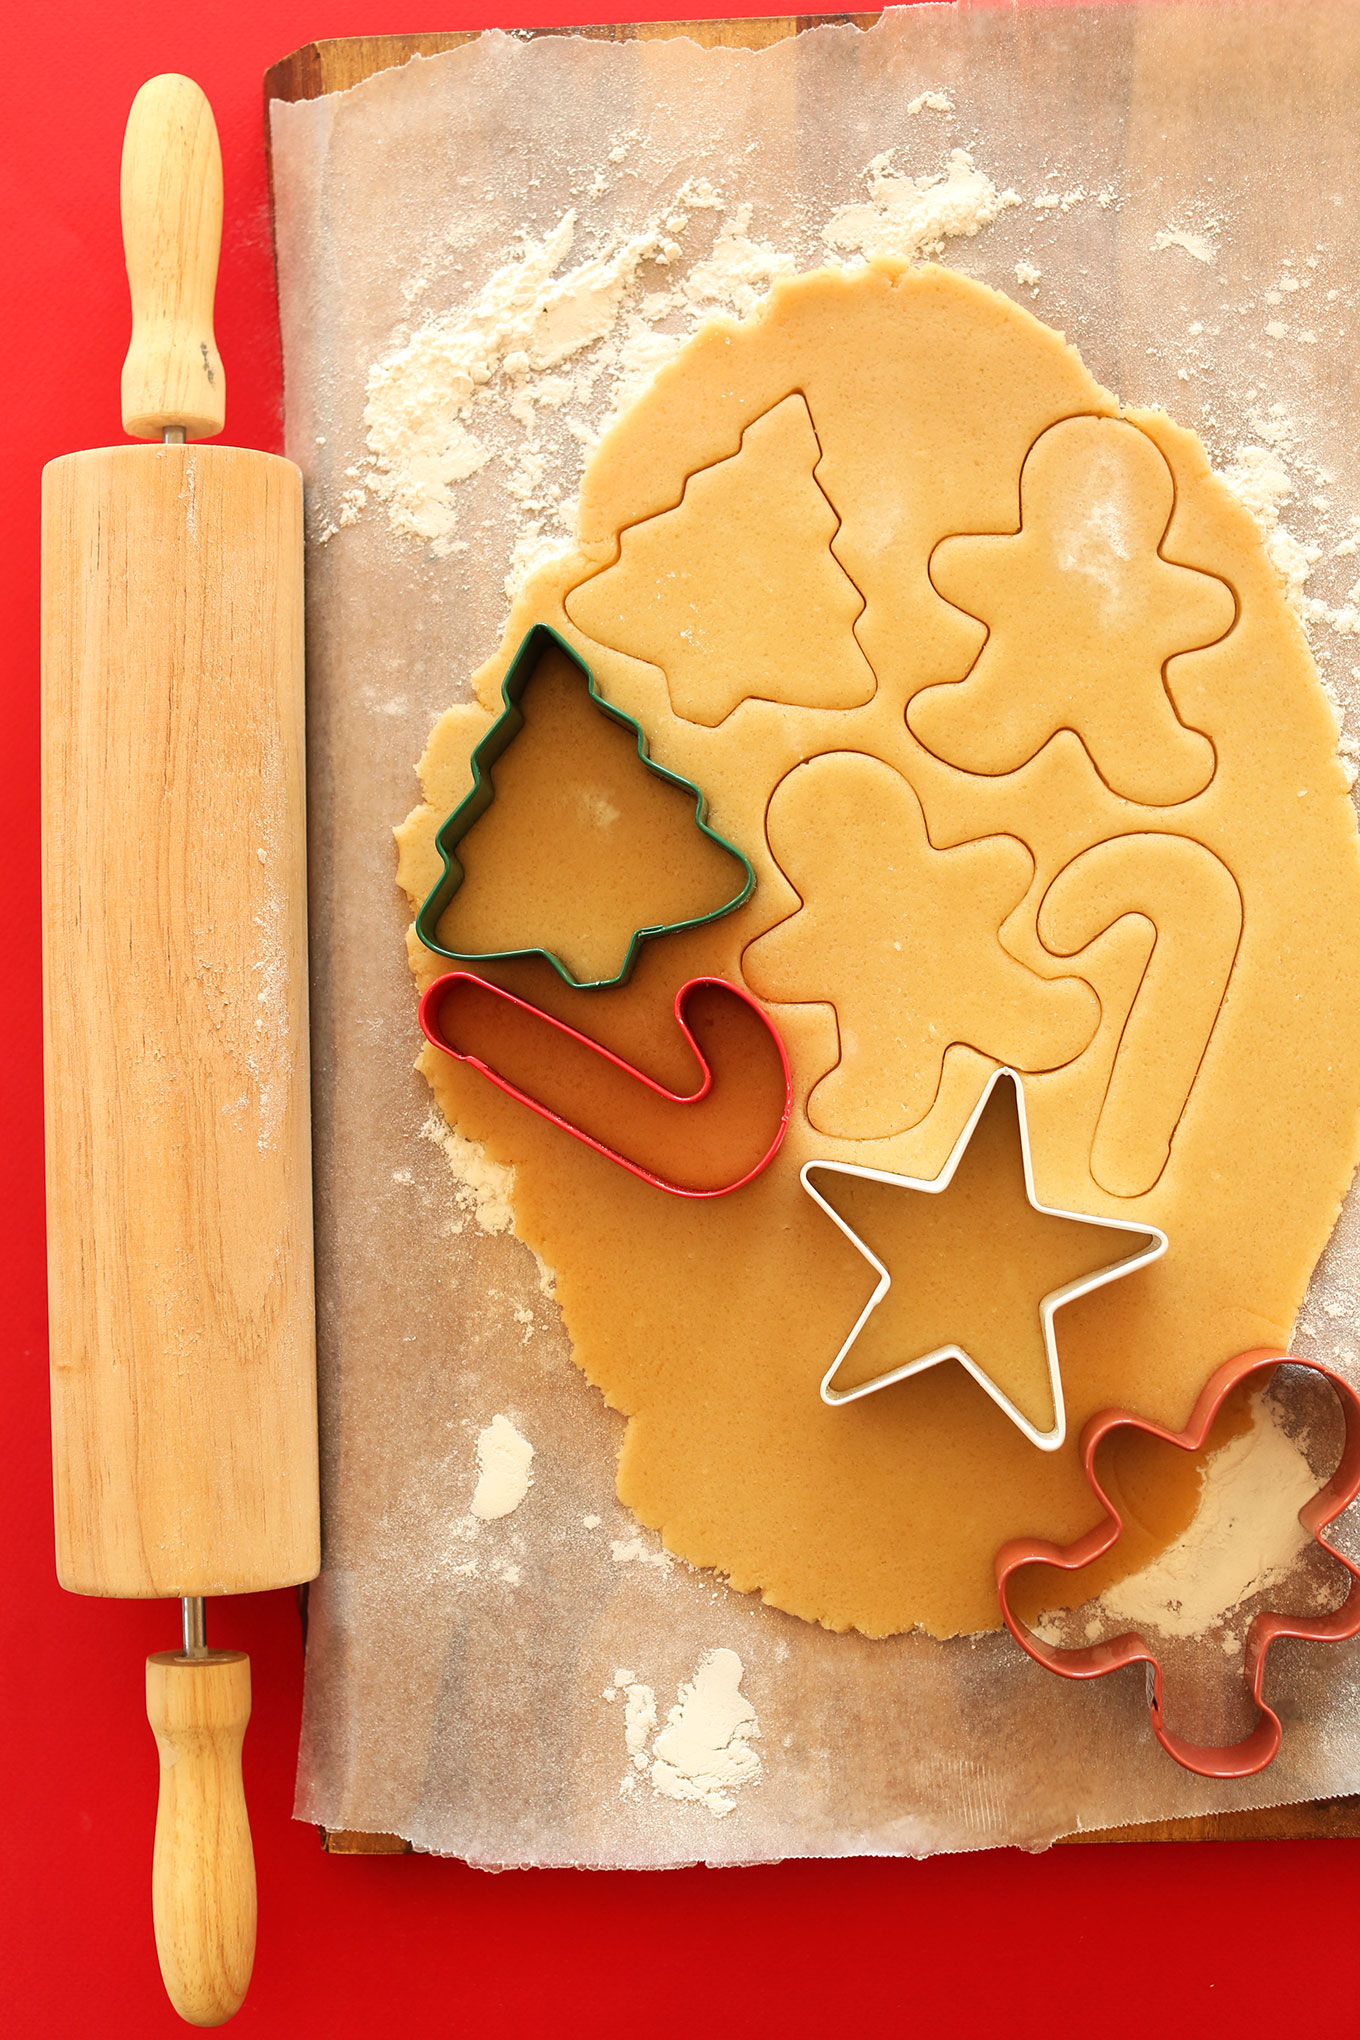 Using cookie cutters to cut out perfect Vegan Sugar Cookies